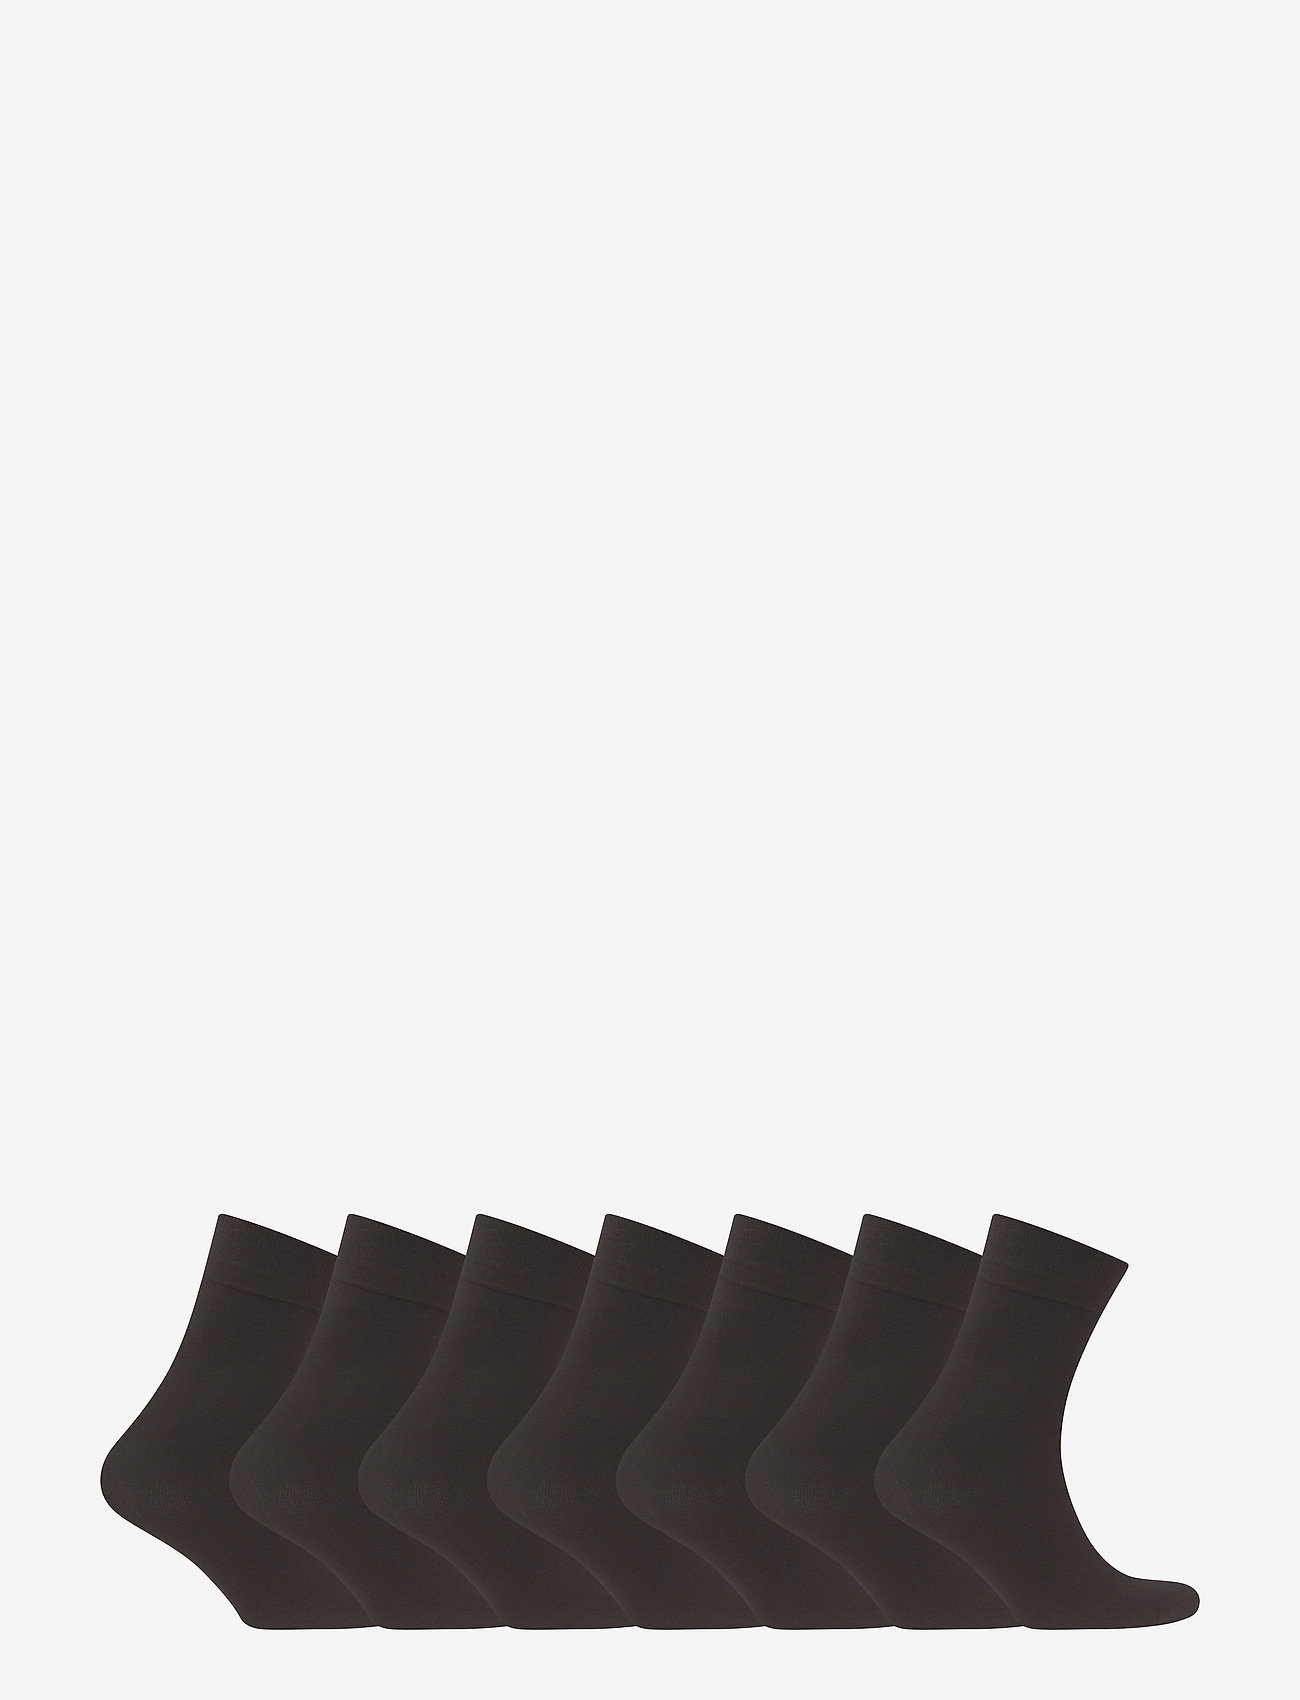 JBS - JBS, socks bamboo 7 pairs box - regular socks - black